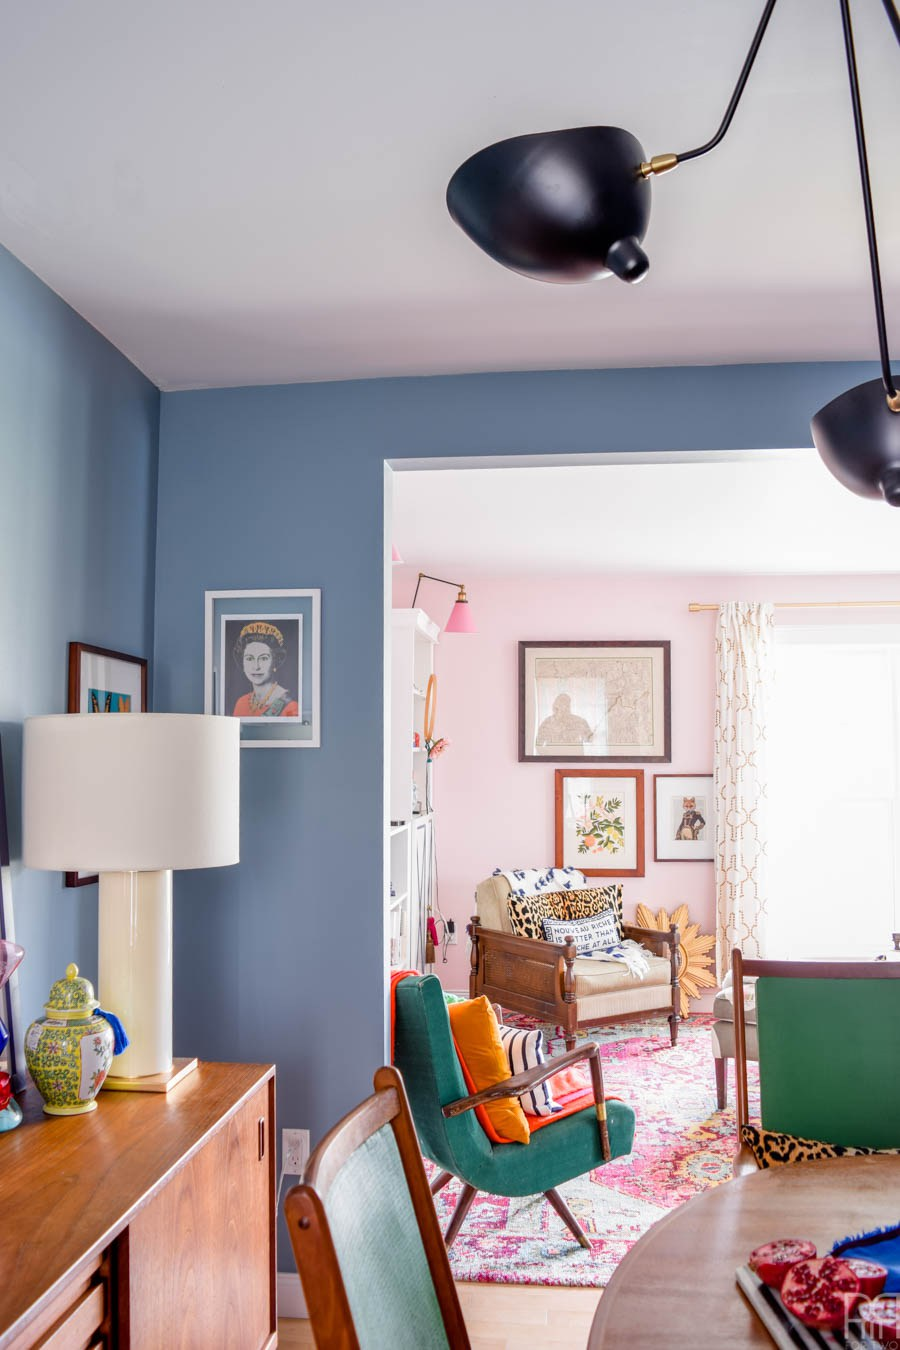 Eclectic Home Tour of PMQ for Two - get tons of renter friendly decorating and DIY ideas - love this eclectic, colorful home